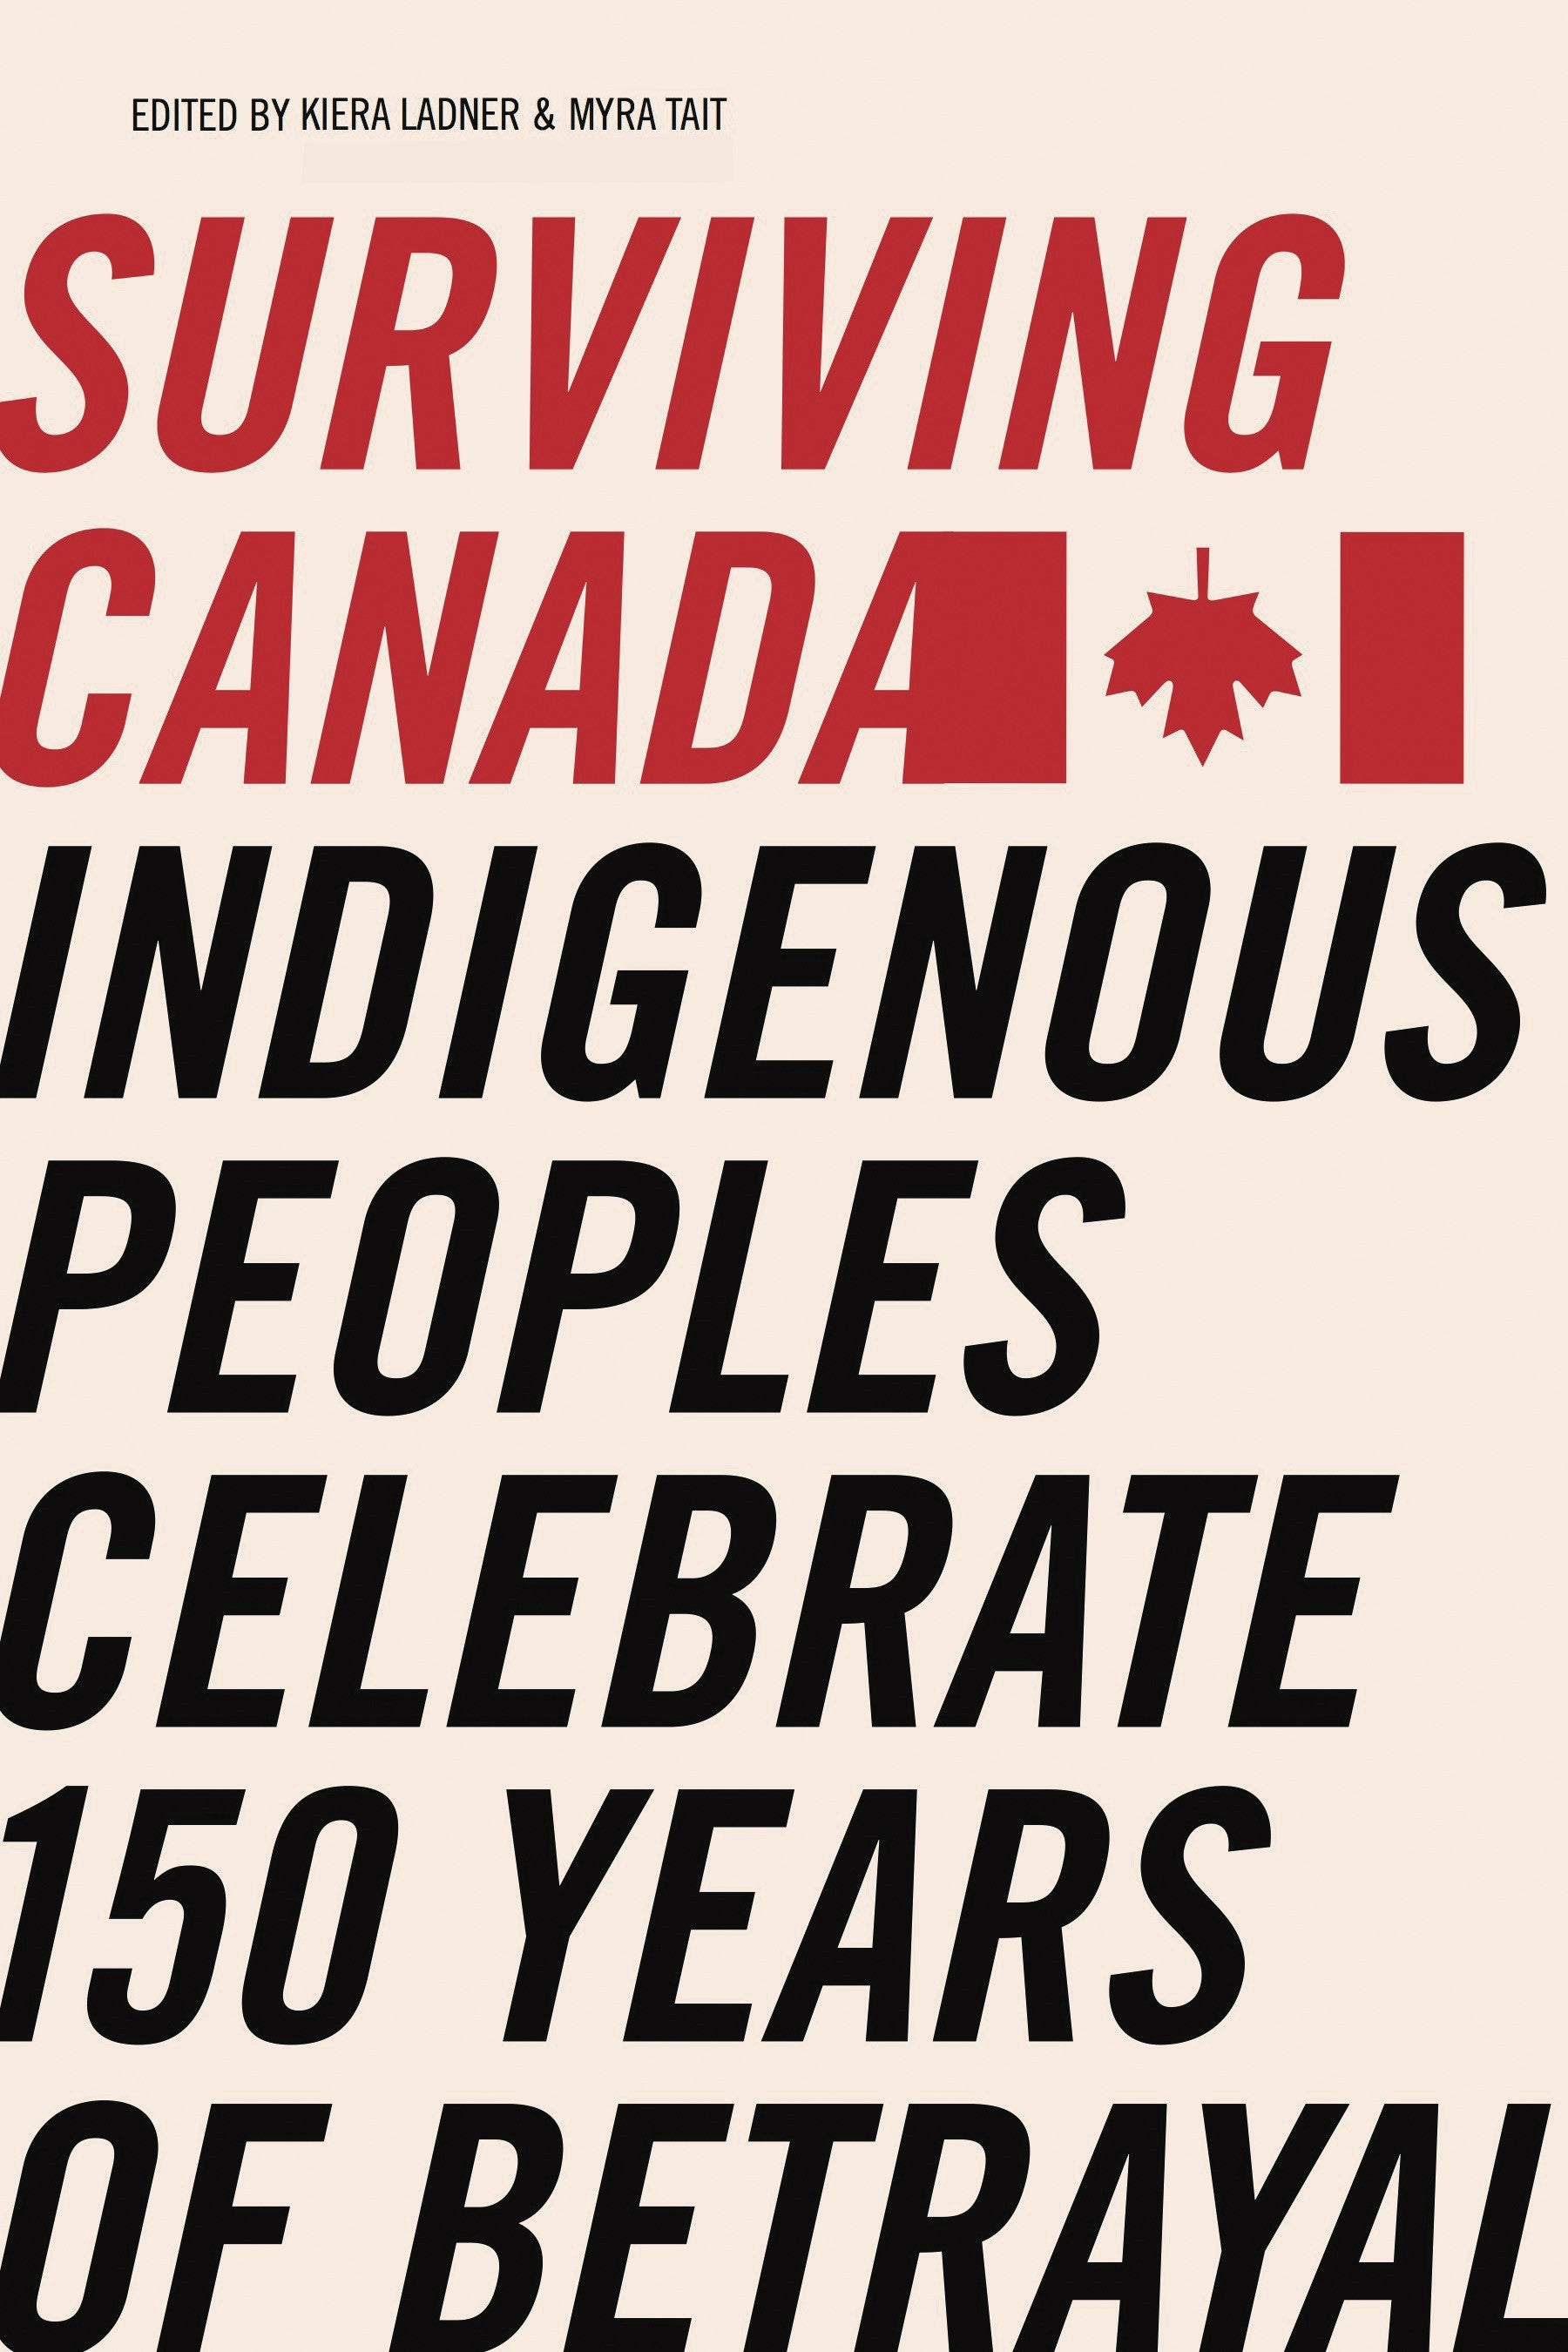 Surviving Canada: Indigenous Peoples Celebrate 150 Years of Betrayal edited by Kiera L. Ladner and Myra J. Tait